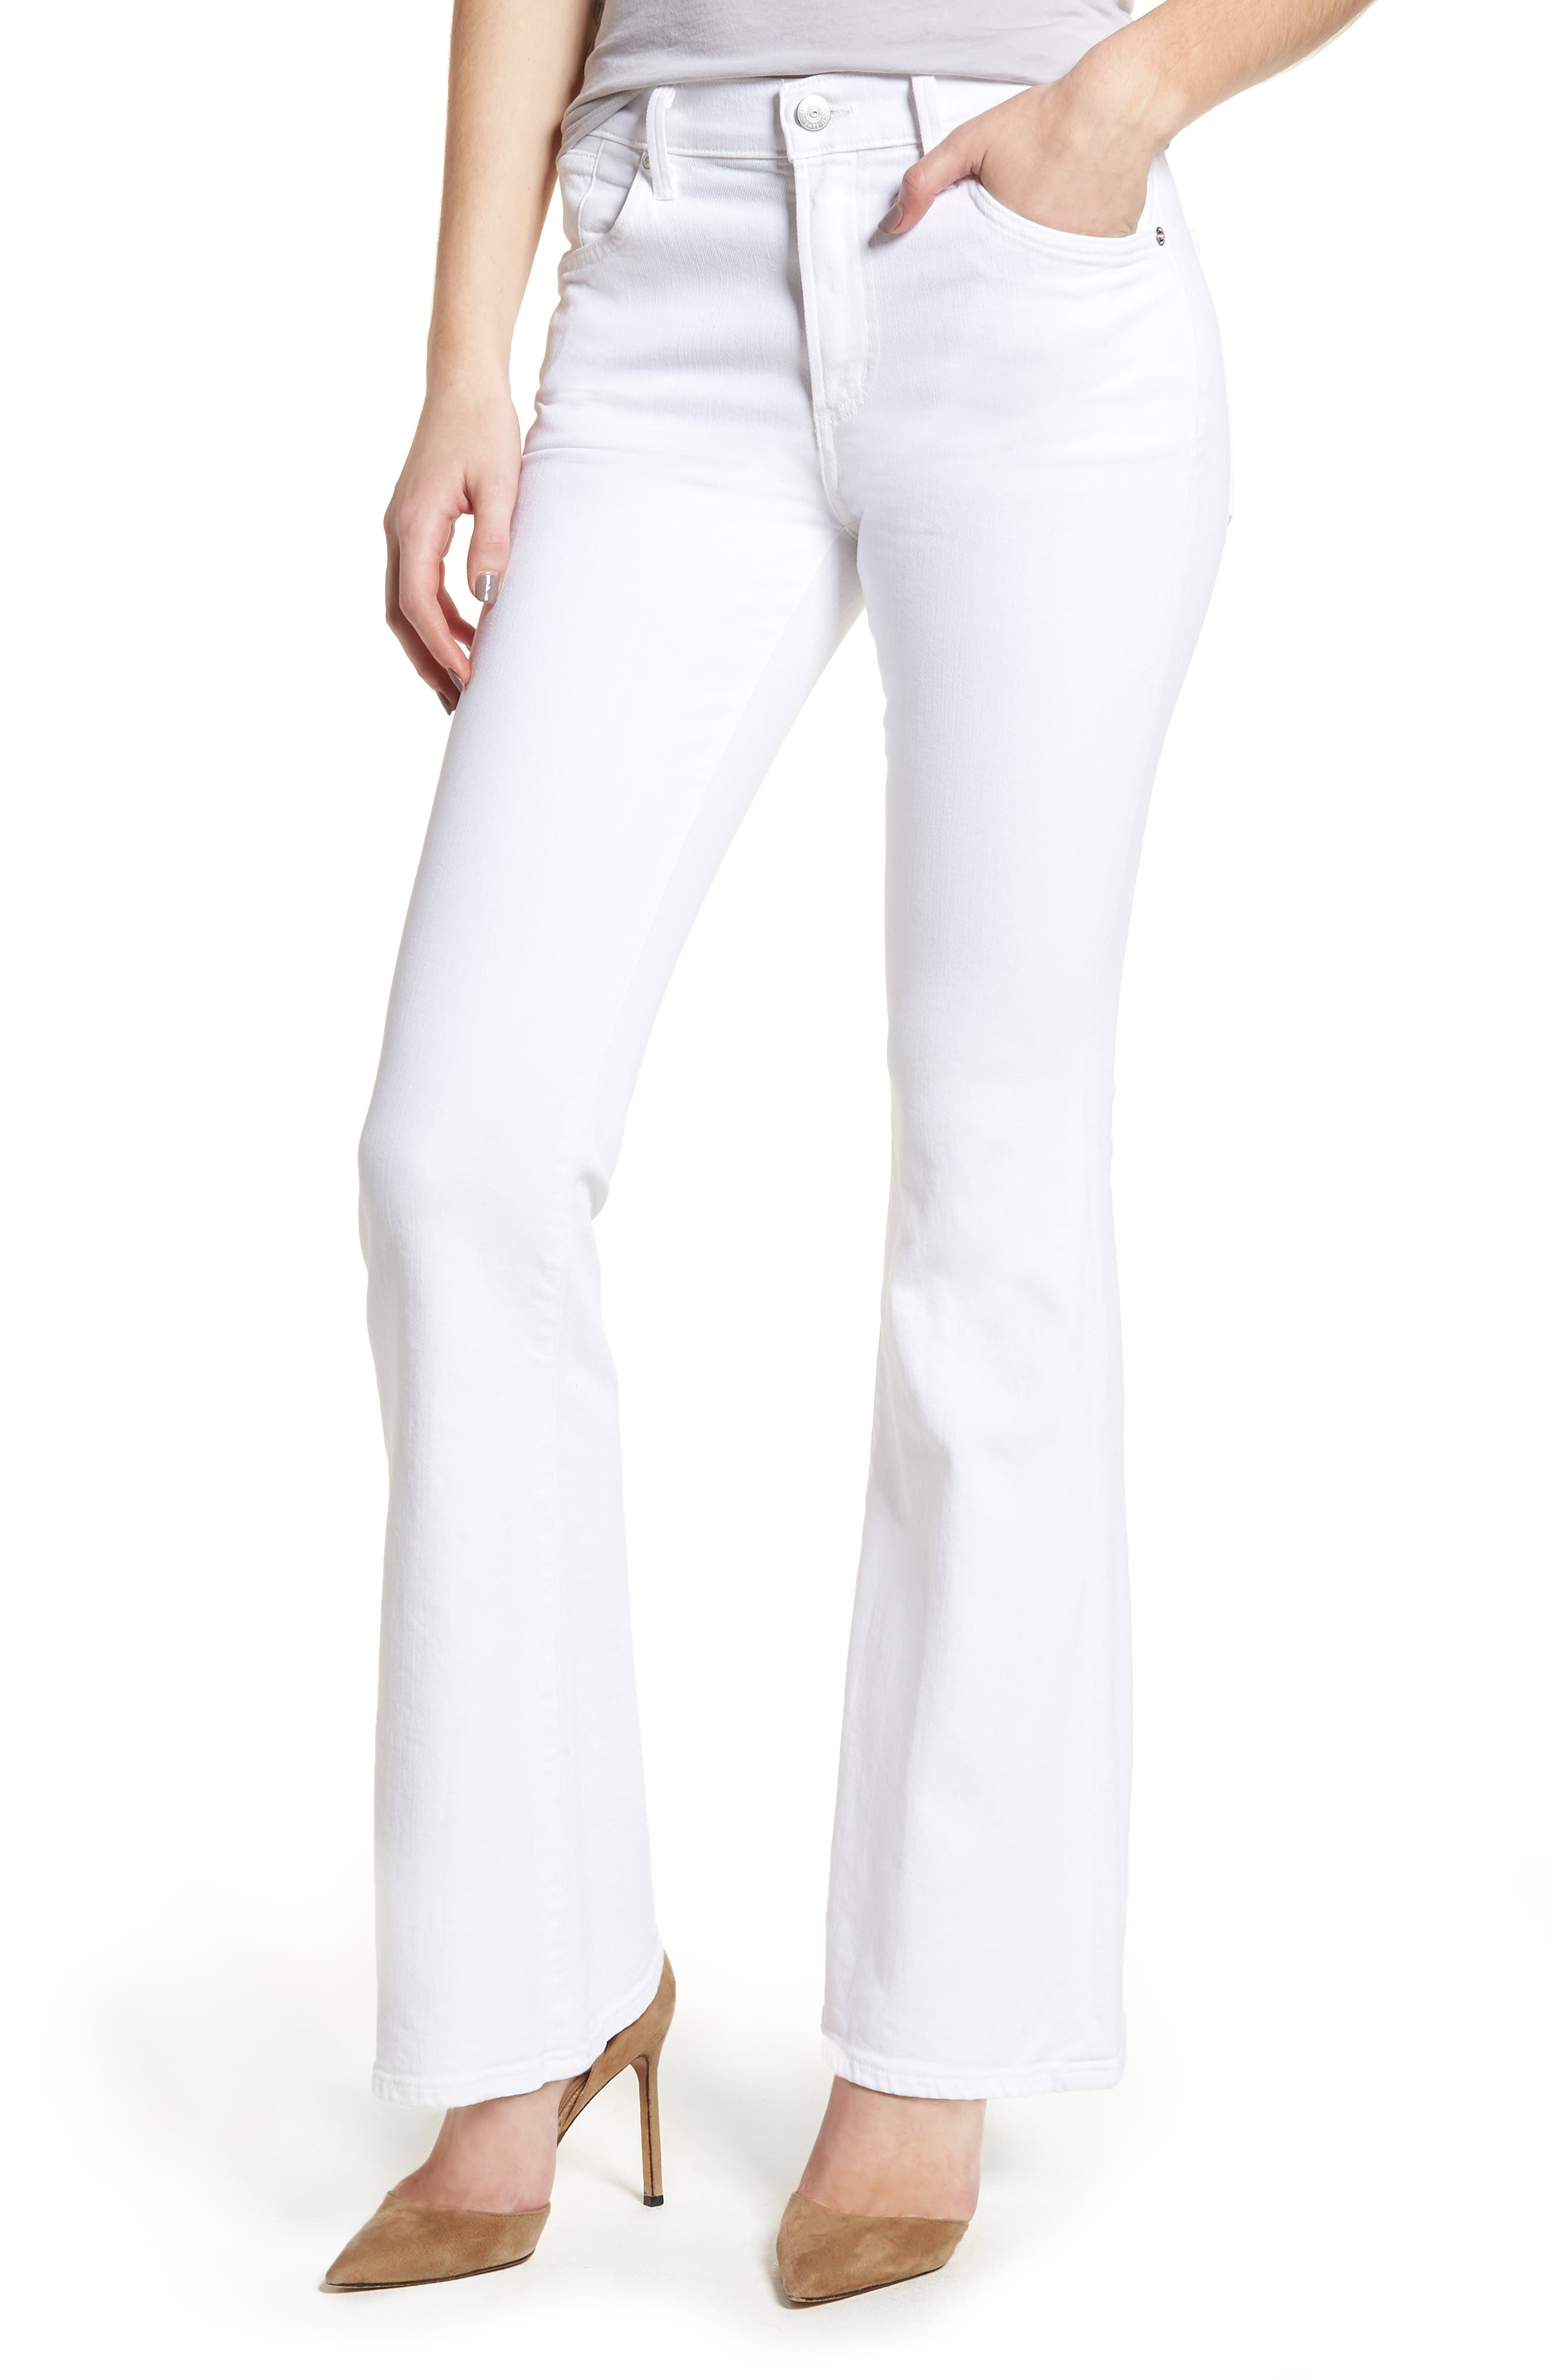 Fleetwood Flare Jeans,                             Main thumbnail 1, color,                             Optic White